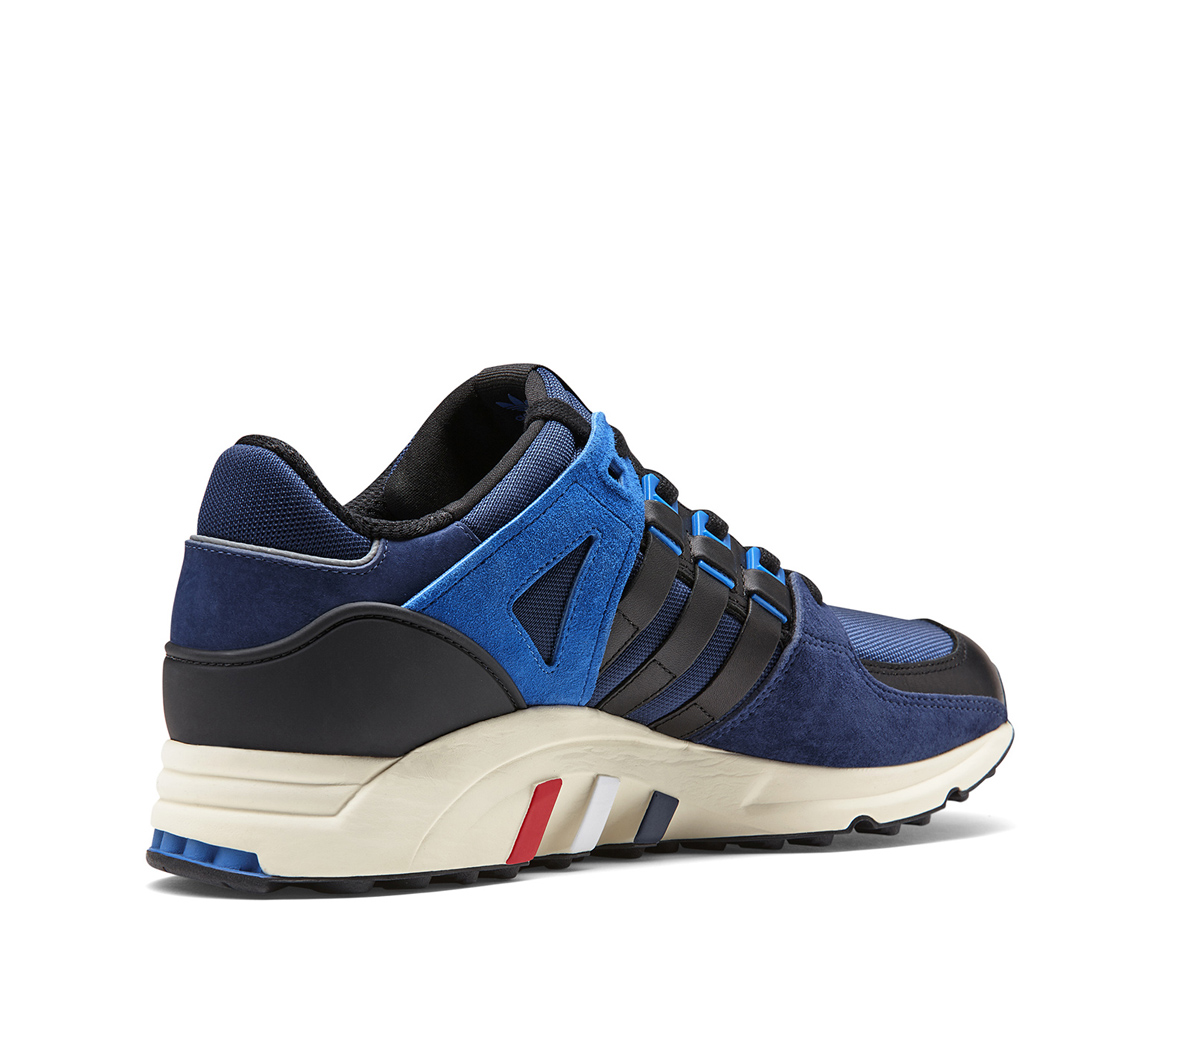 new arrivals 915df 4e6b2 colette x UNDEFEATED x adidas Consortium EQT Support ...